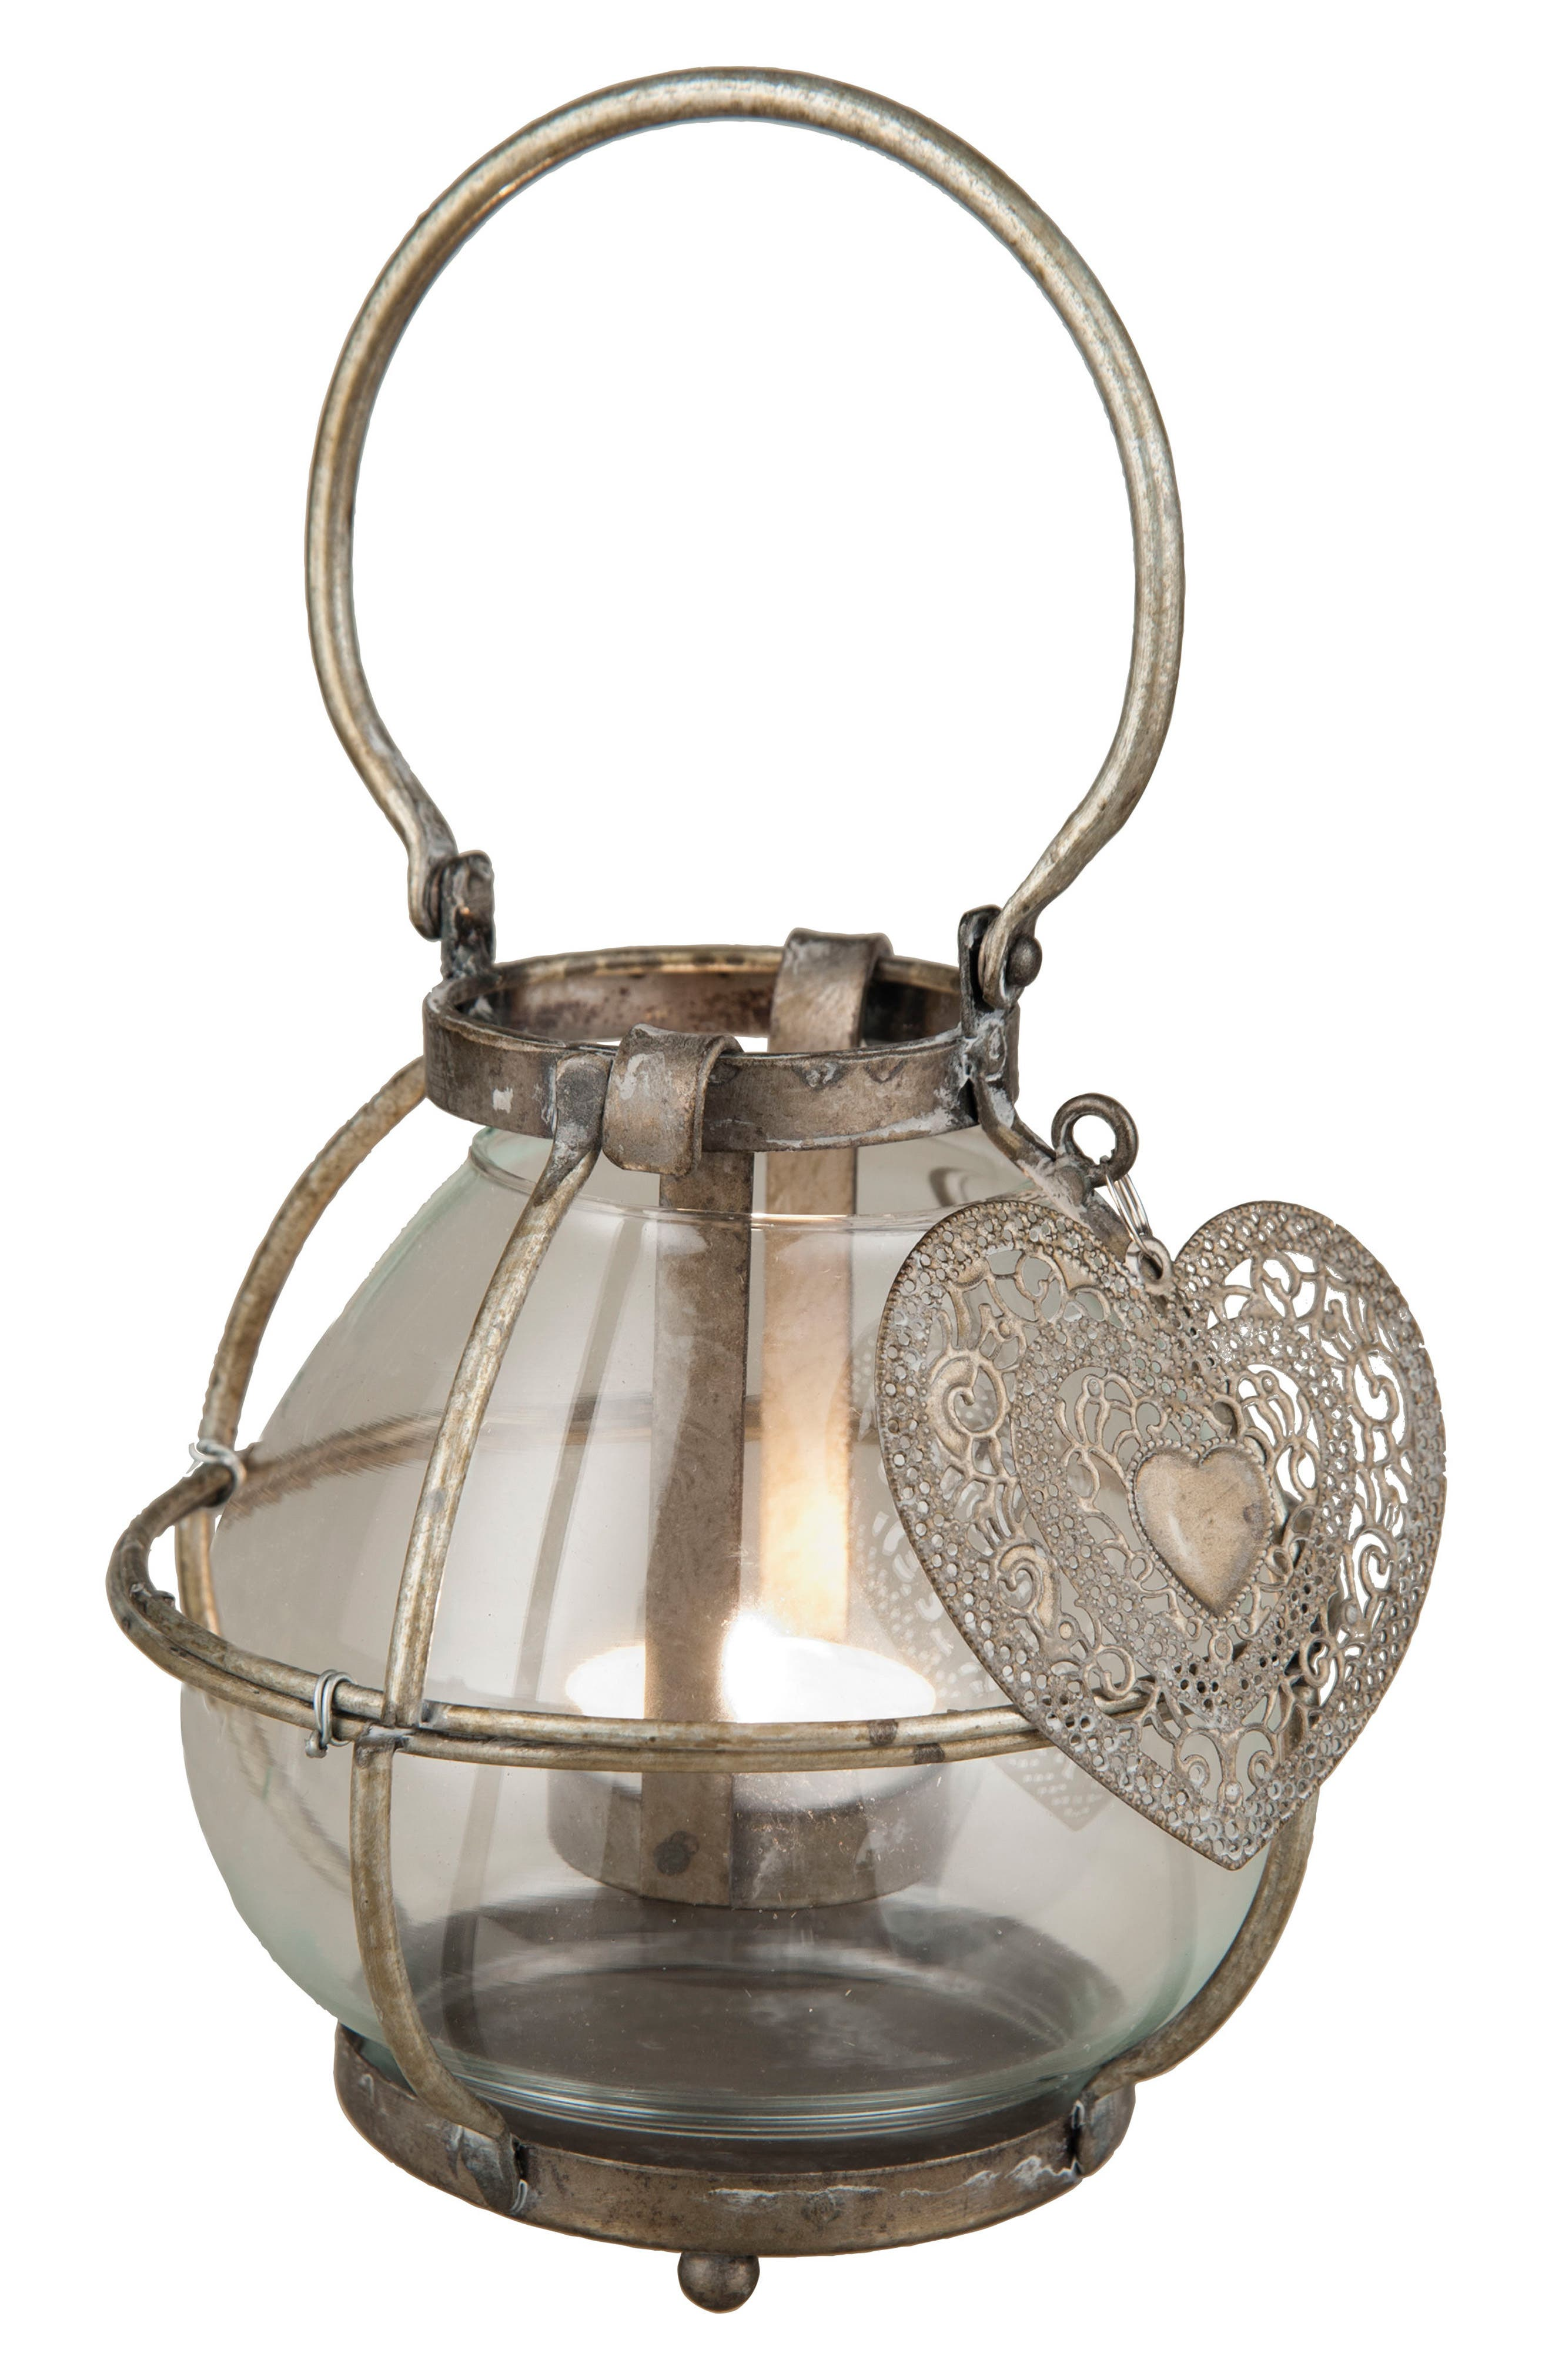 With Love Lantern Candle Holder,                             Main thumbnail 1, color,                             040